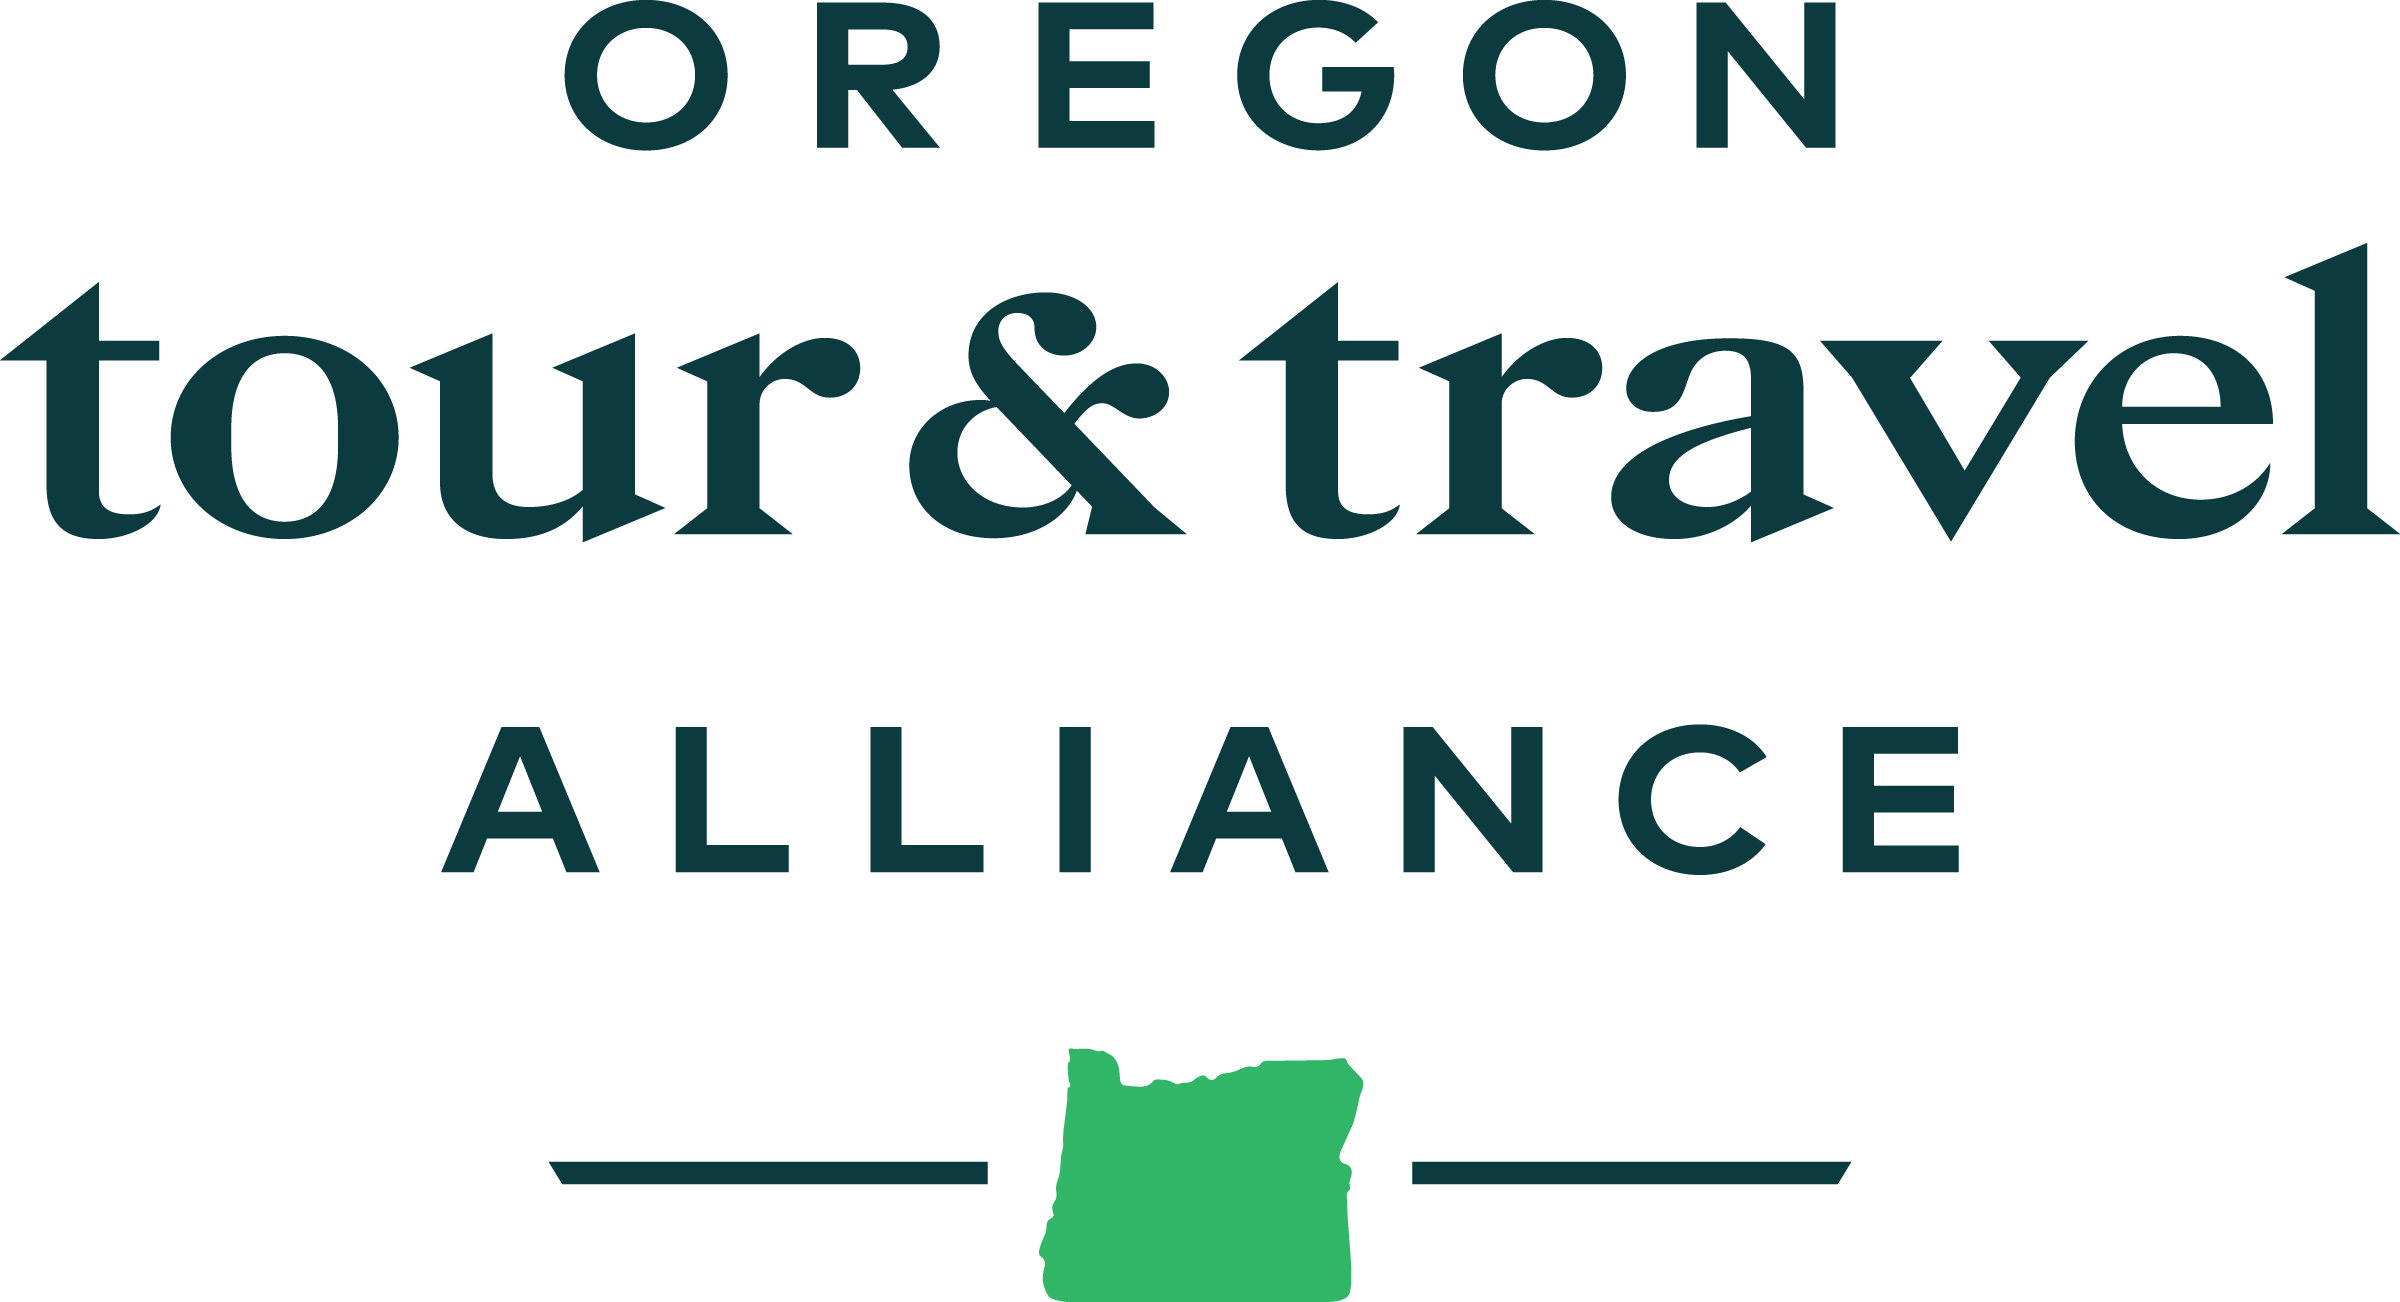 Oregon Tour & Travel Alliance